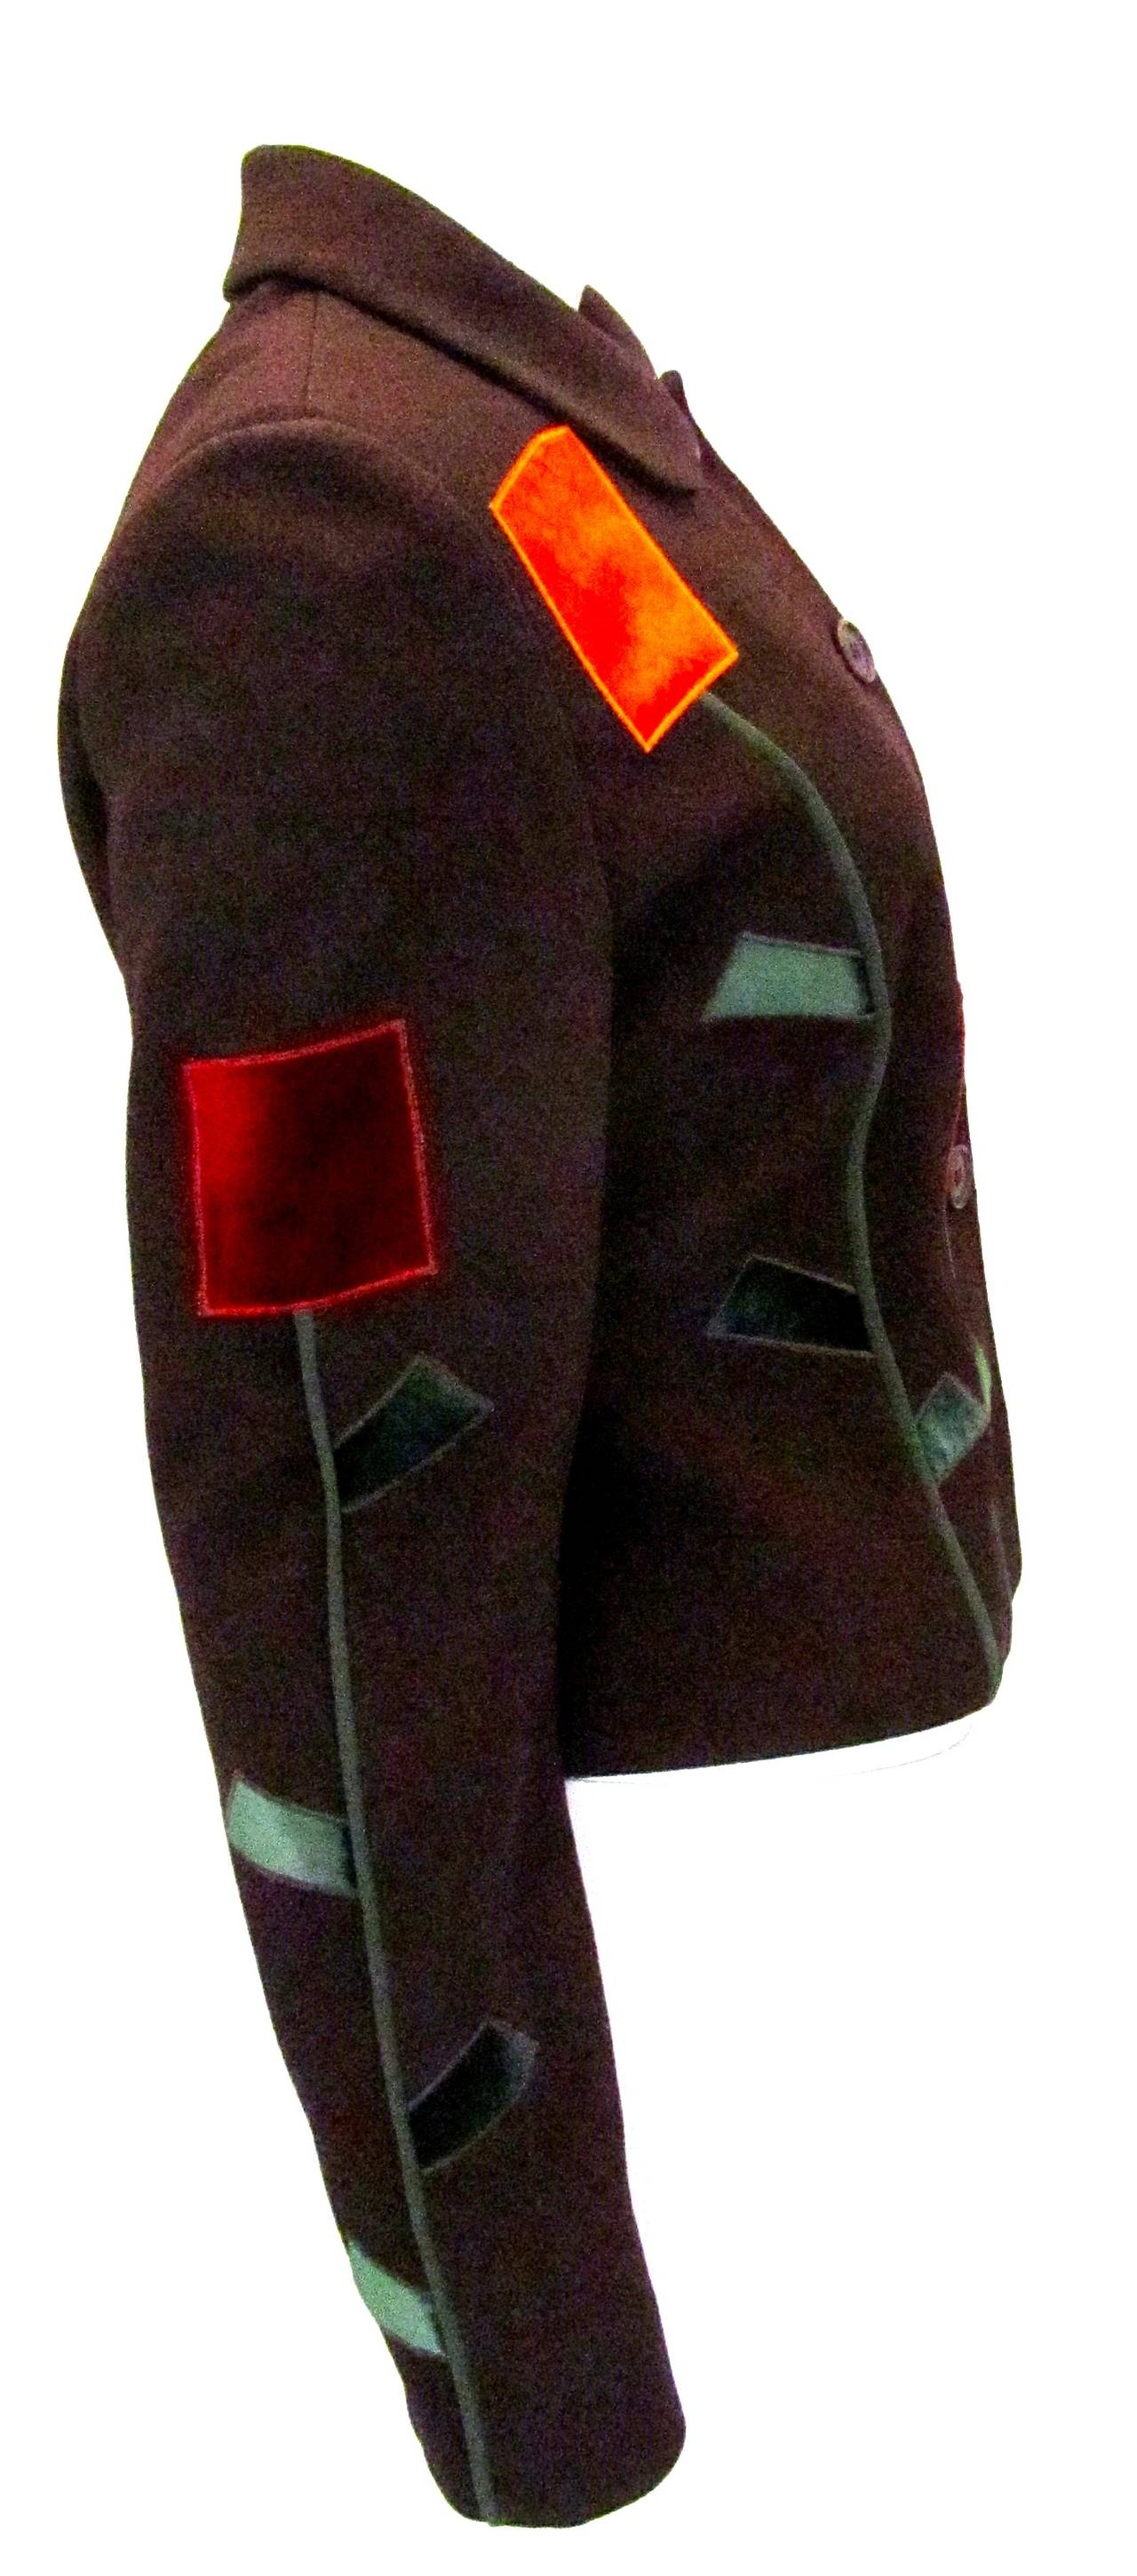 Moschino Cheap and Chic blazer with geometric flower design. The blazer is 75% rayon and 25% wool. The flowers are a soft shiny velvet and are orange, red, and green. Jacket is in excellent condition and is a magnificent example of Moschino's design